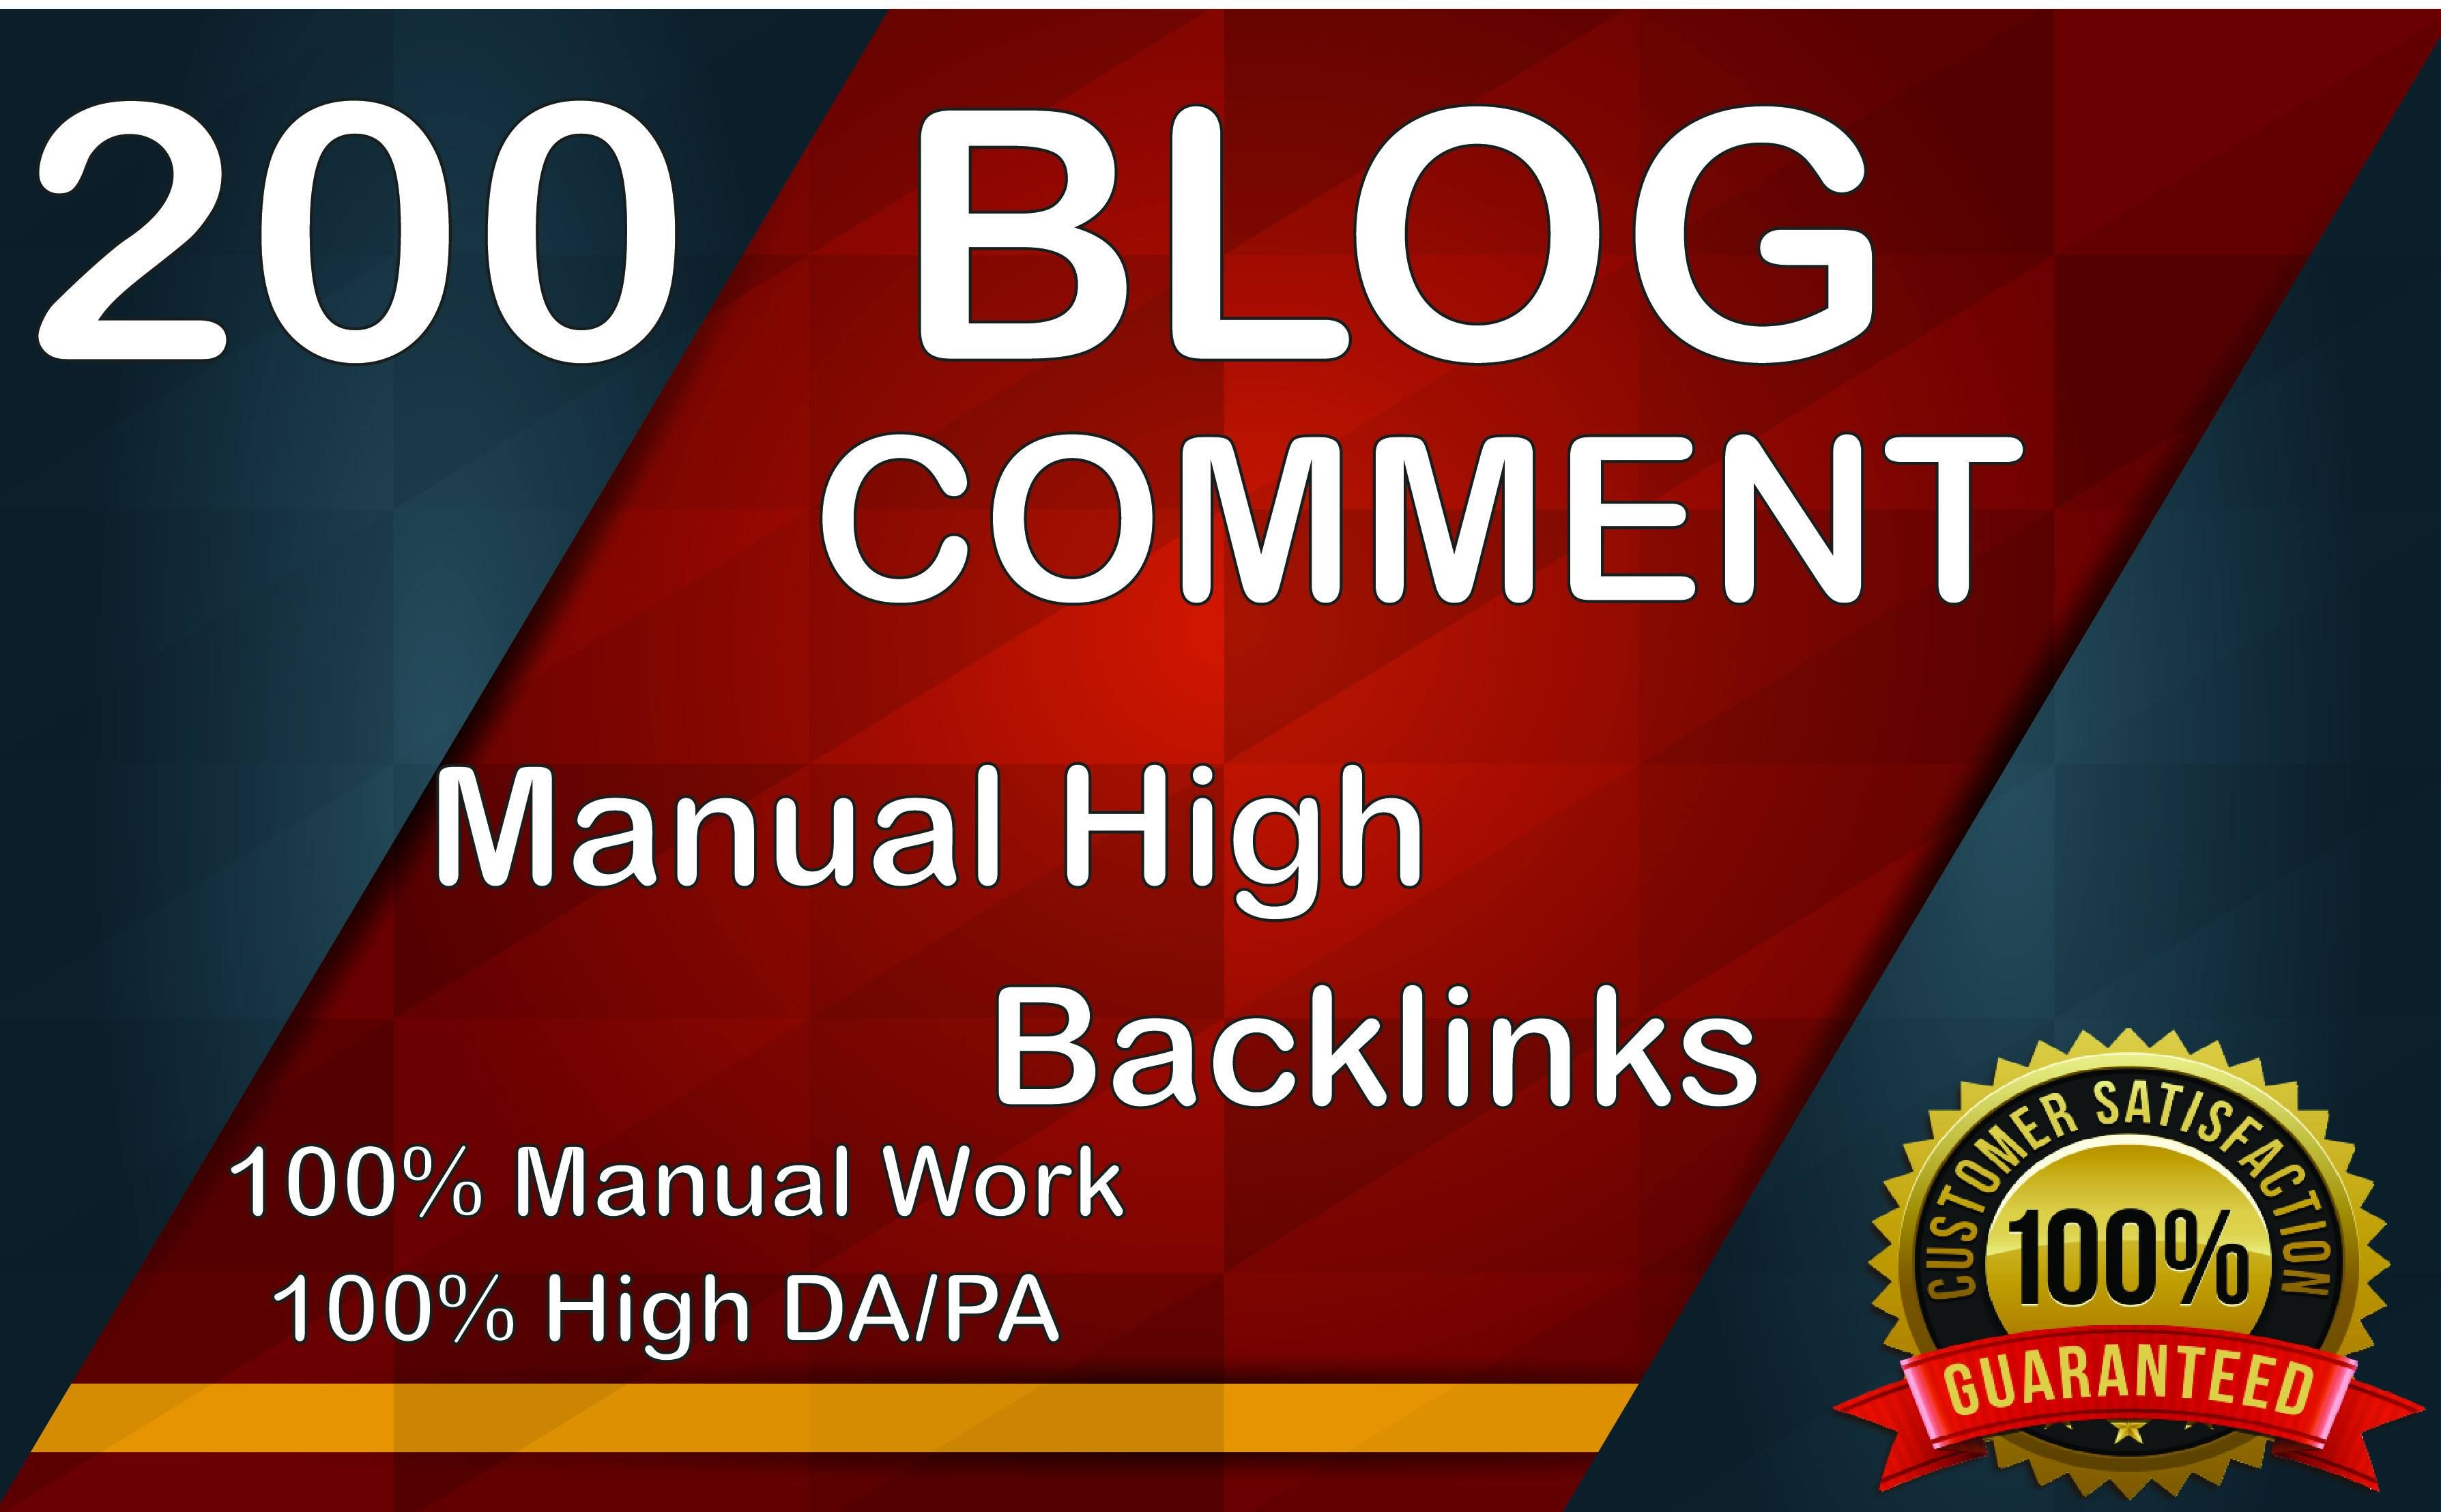 I Will Provide 200 Dofollow Blog Comments Backlinks in High Quality